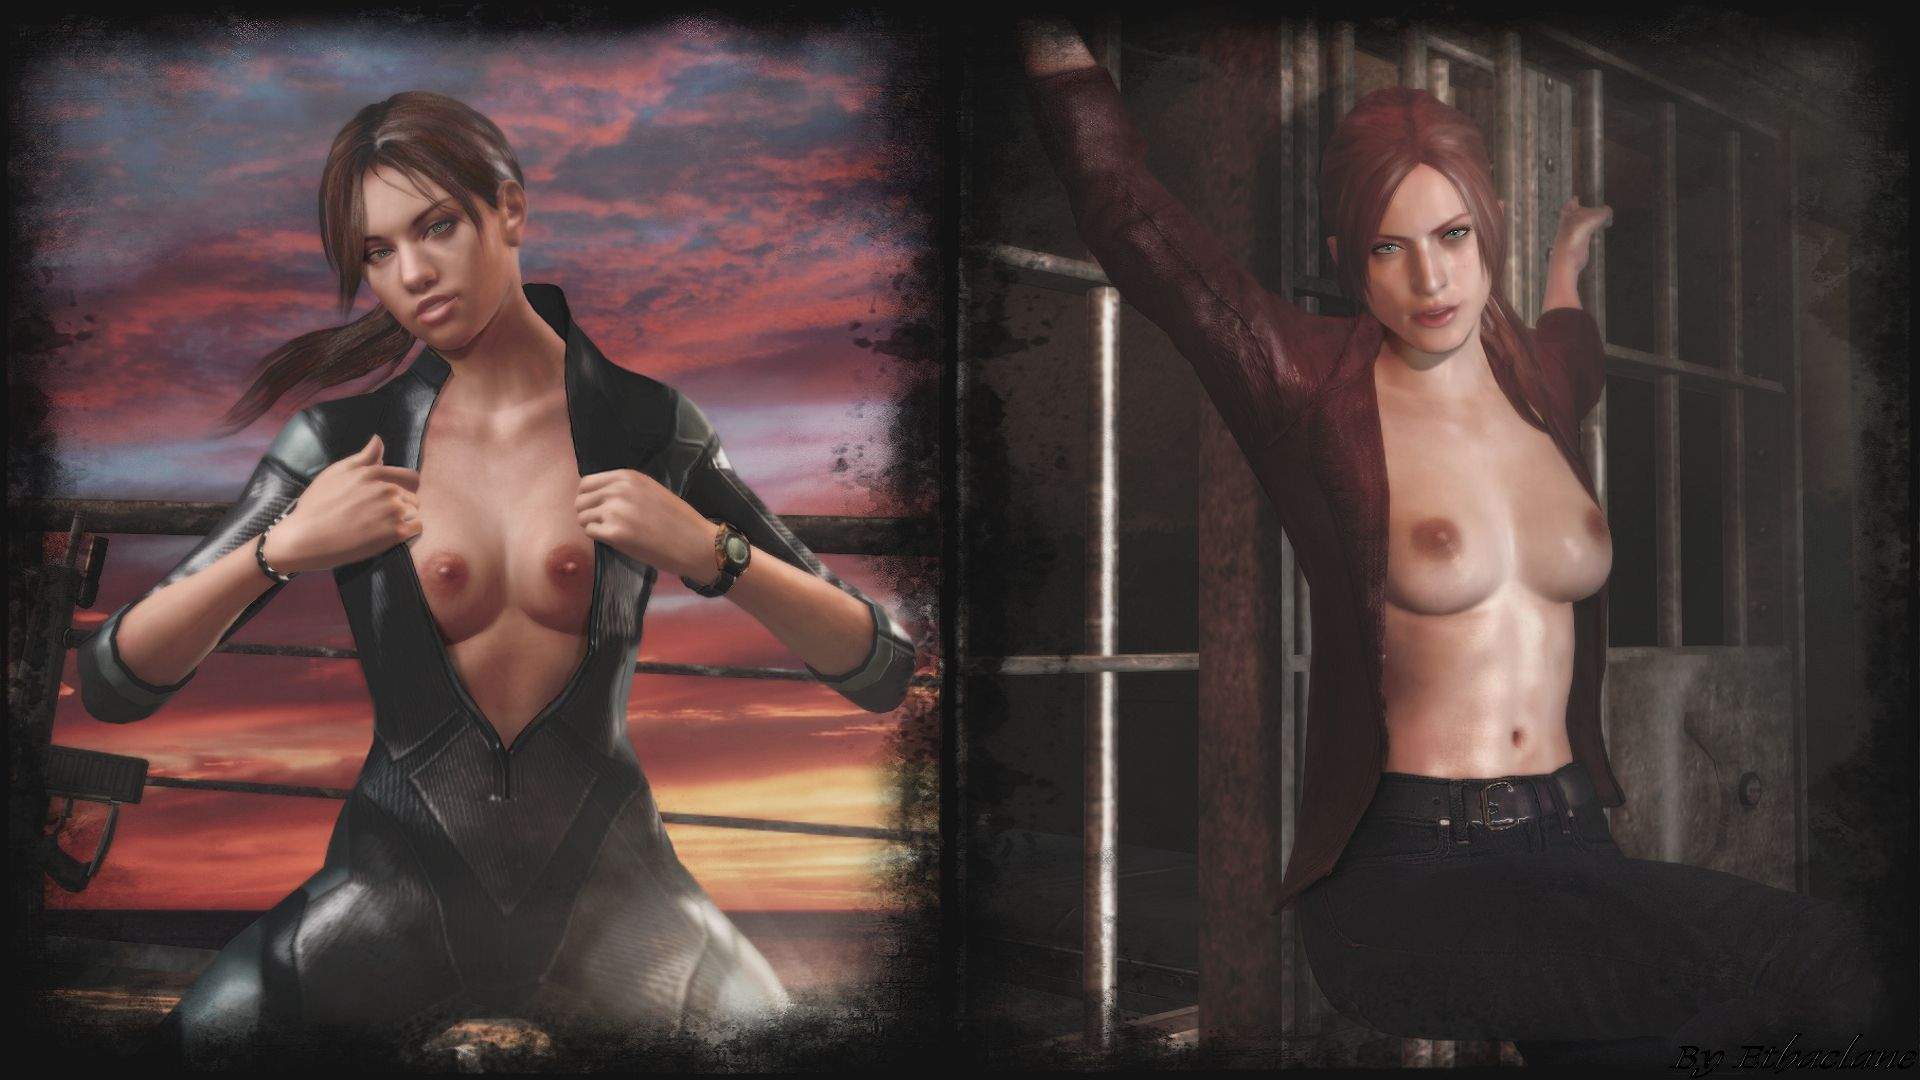 The girl from resident evil porn girl naked photo